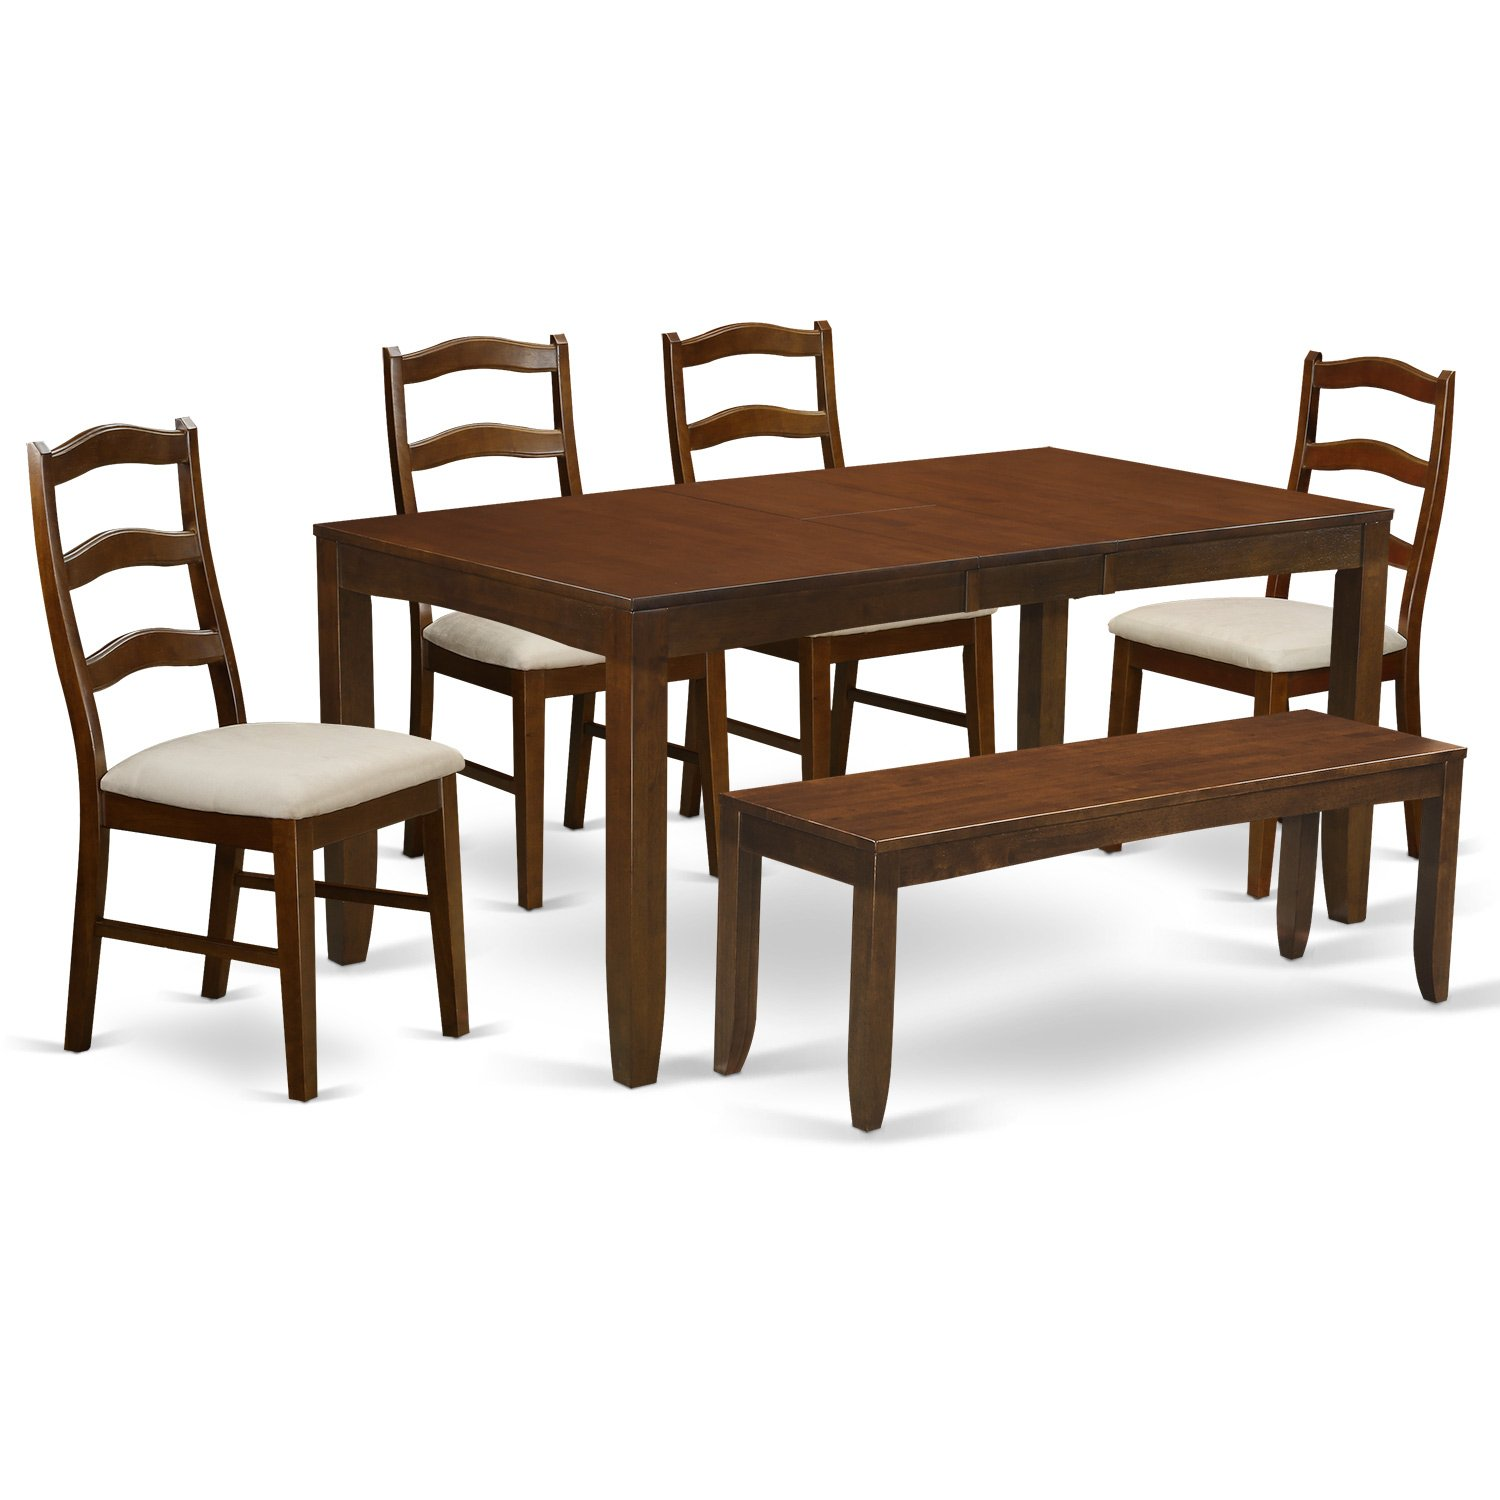 Stupendous East West Furniture Lyhe6 Esp C 6 Piece Set Lynfield Dining Table With One 12 Leaf And 4 Padded Seat Chairs Plus Bench In Espresso Pabps2019 Chair Design Images Pabps2019Com